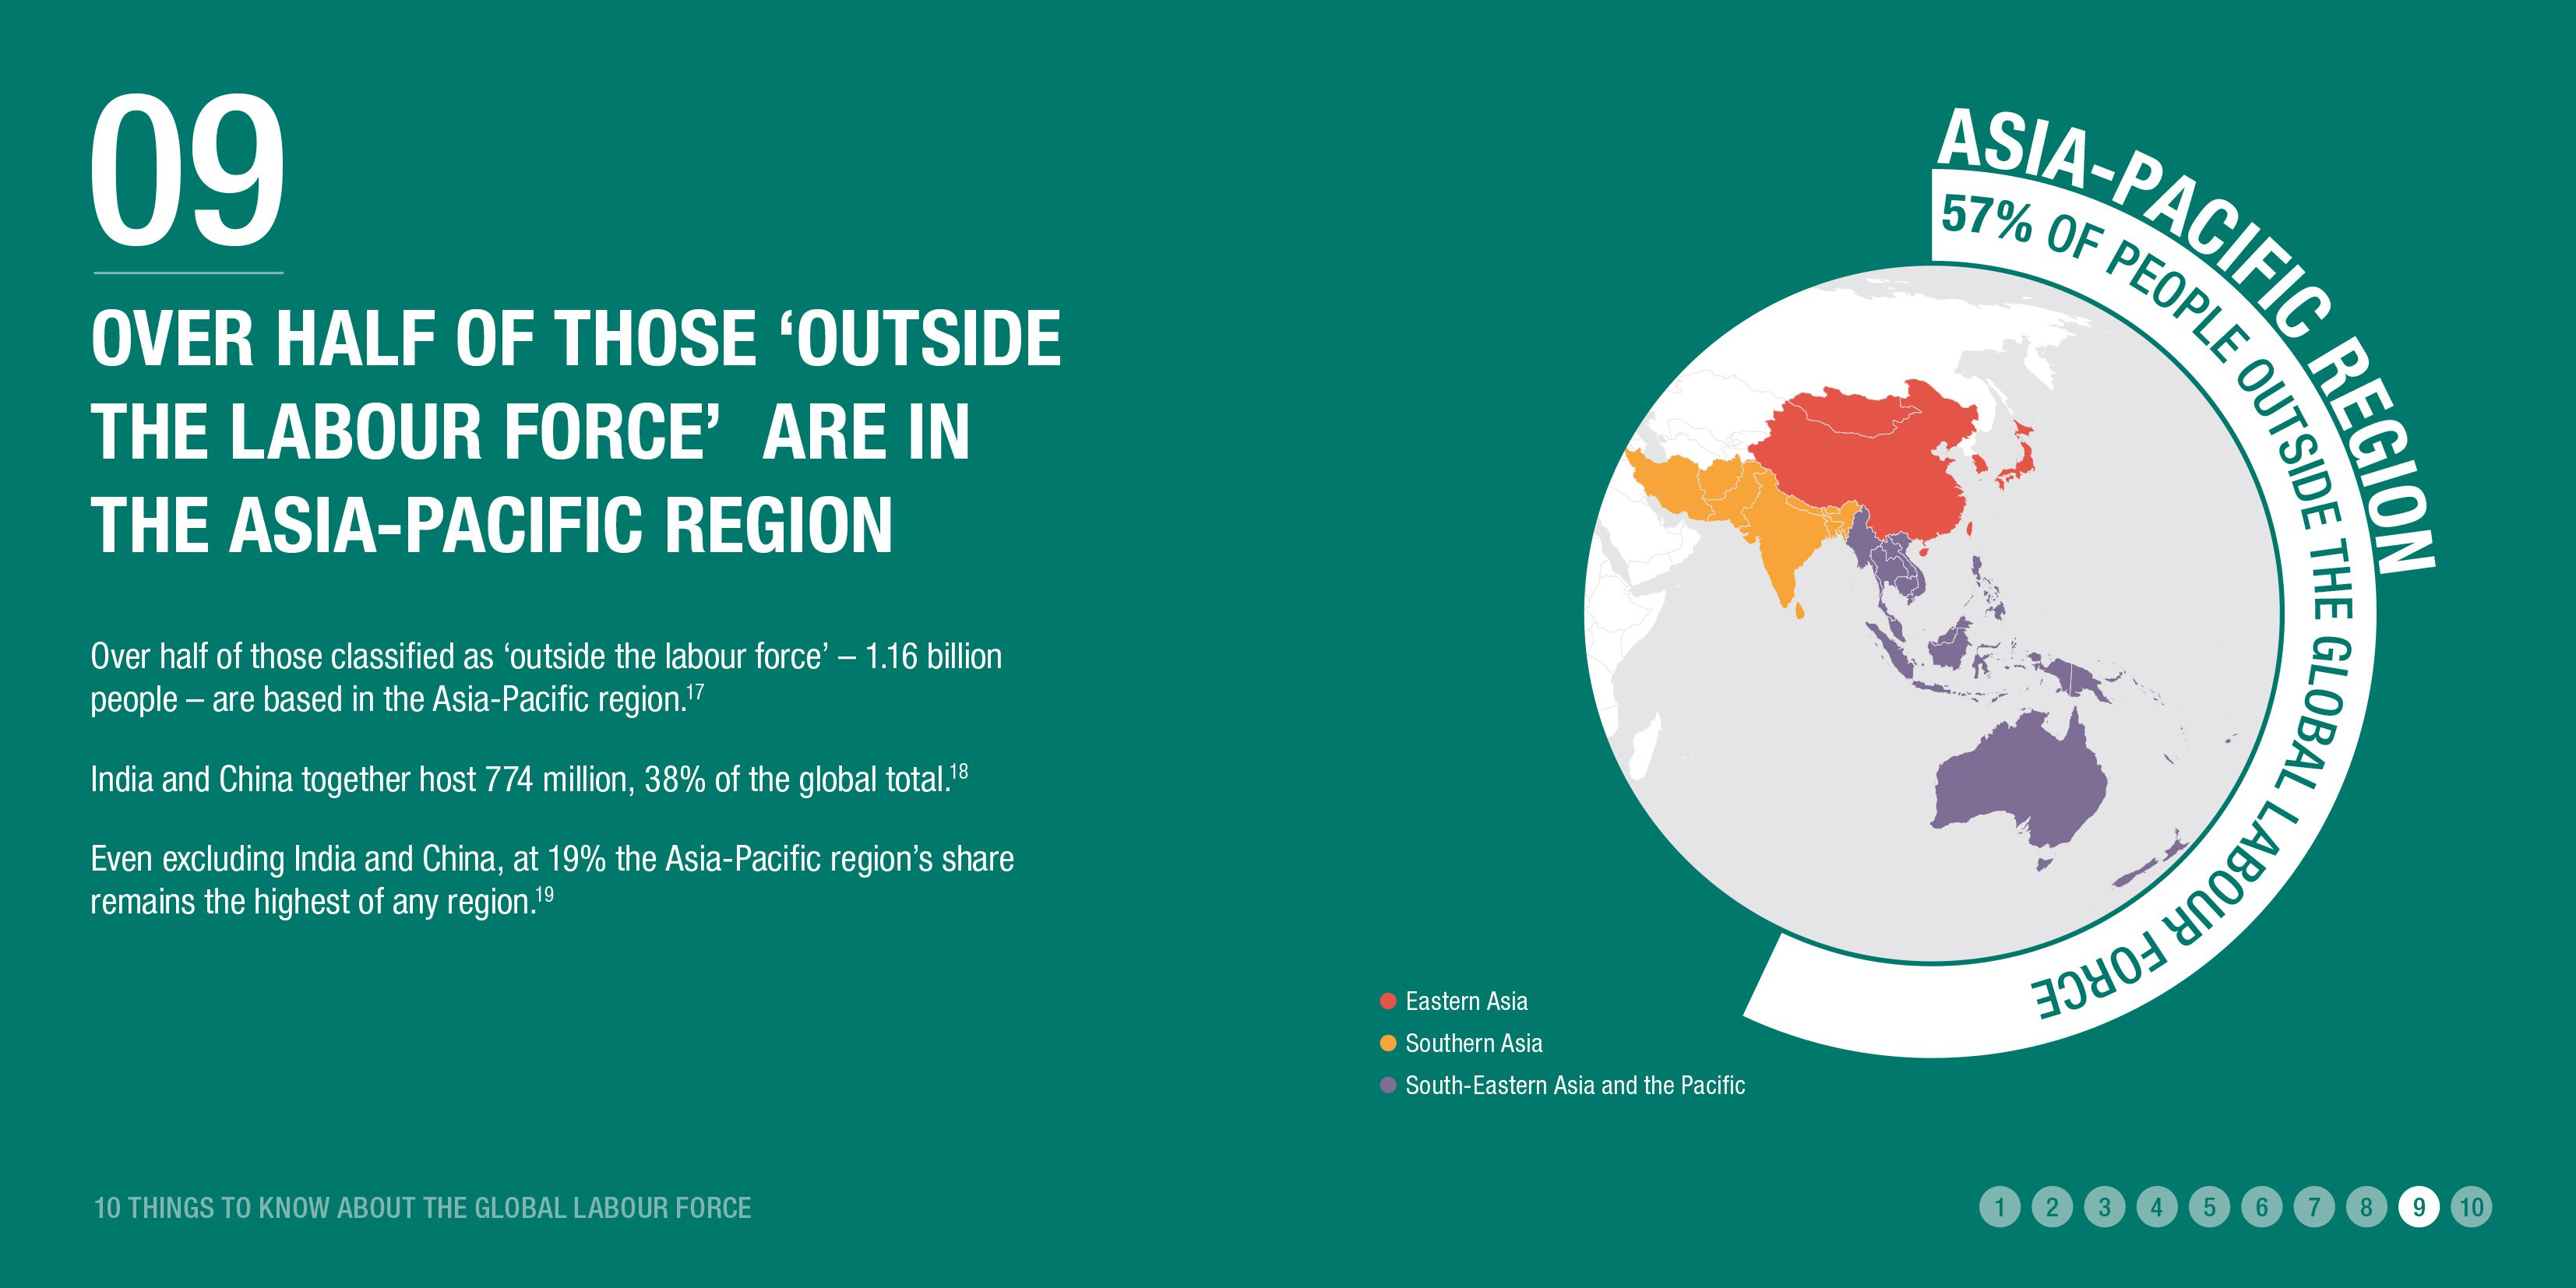 Over half of those 'outside the labour force' are in the Asia-Pacific region